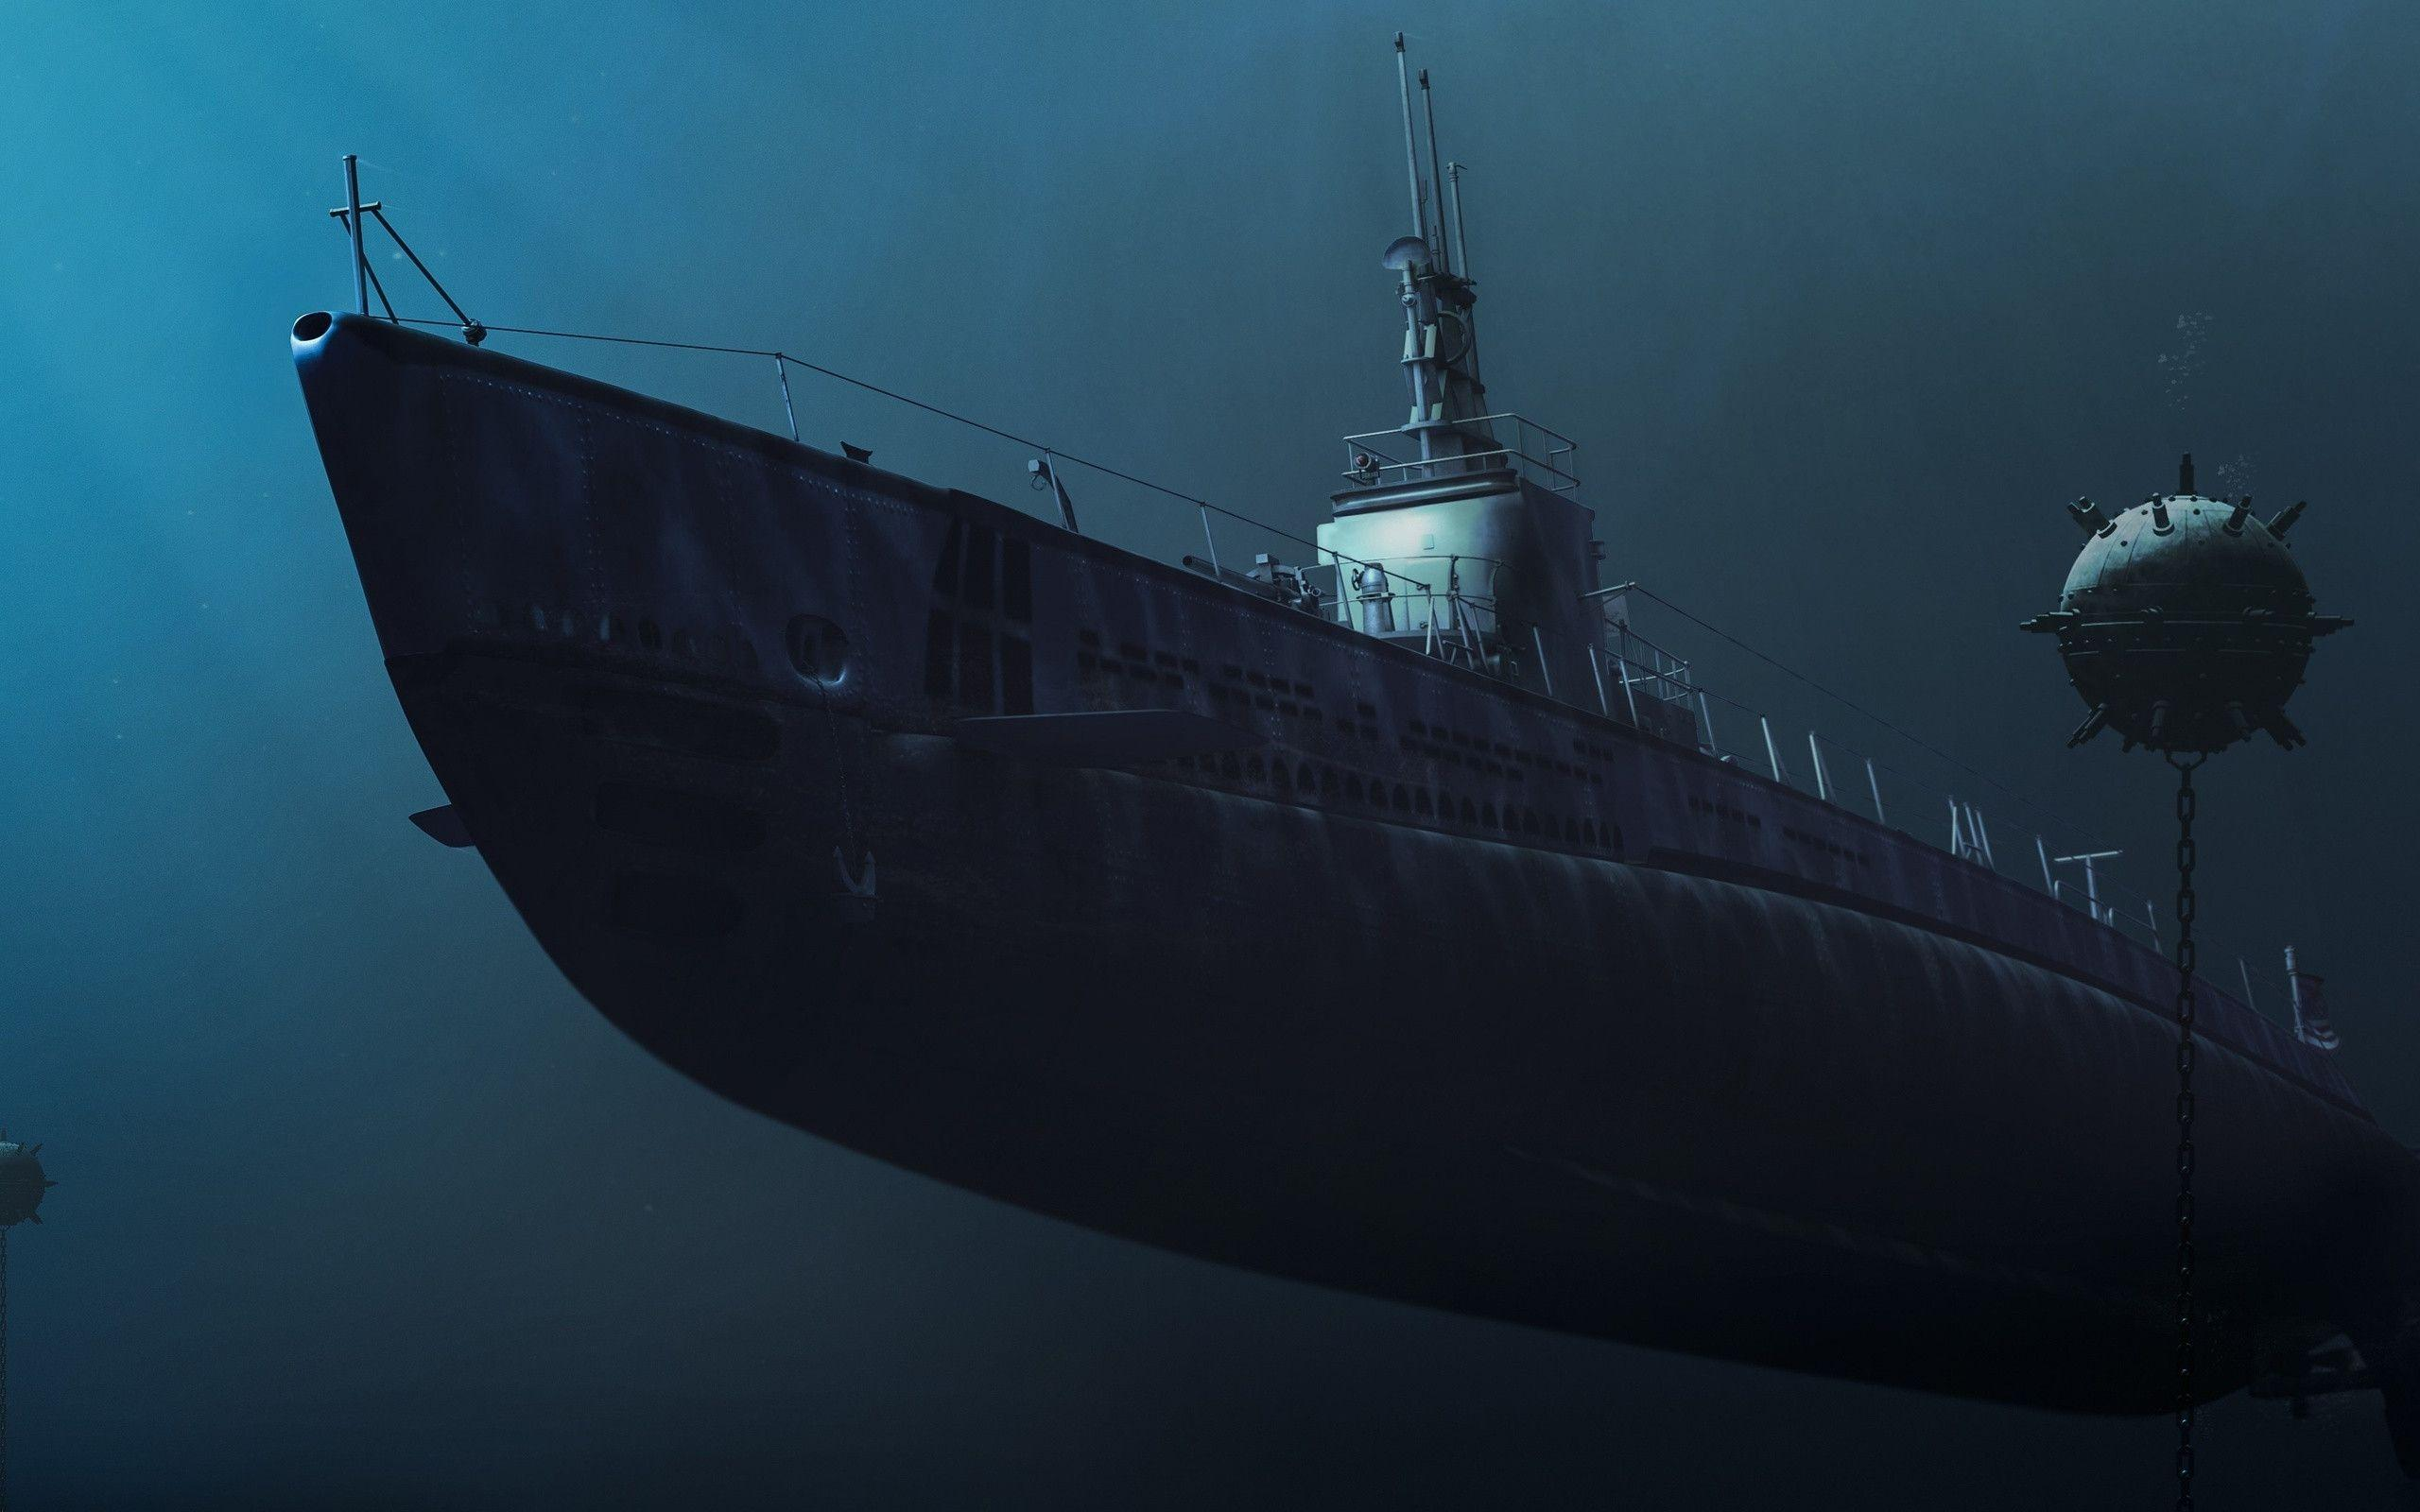 Submarine Wallpapers Wallpaper Cave HD Wallpapers Download Free Images Wallpaper [1000image.com]